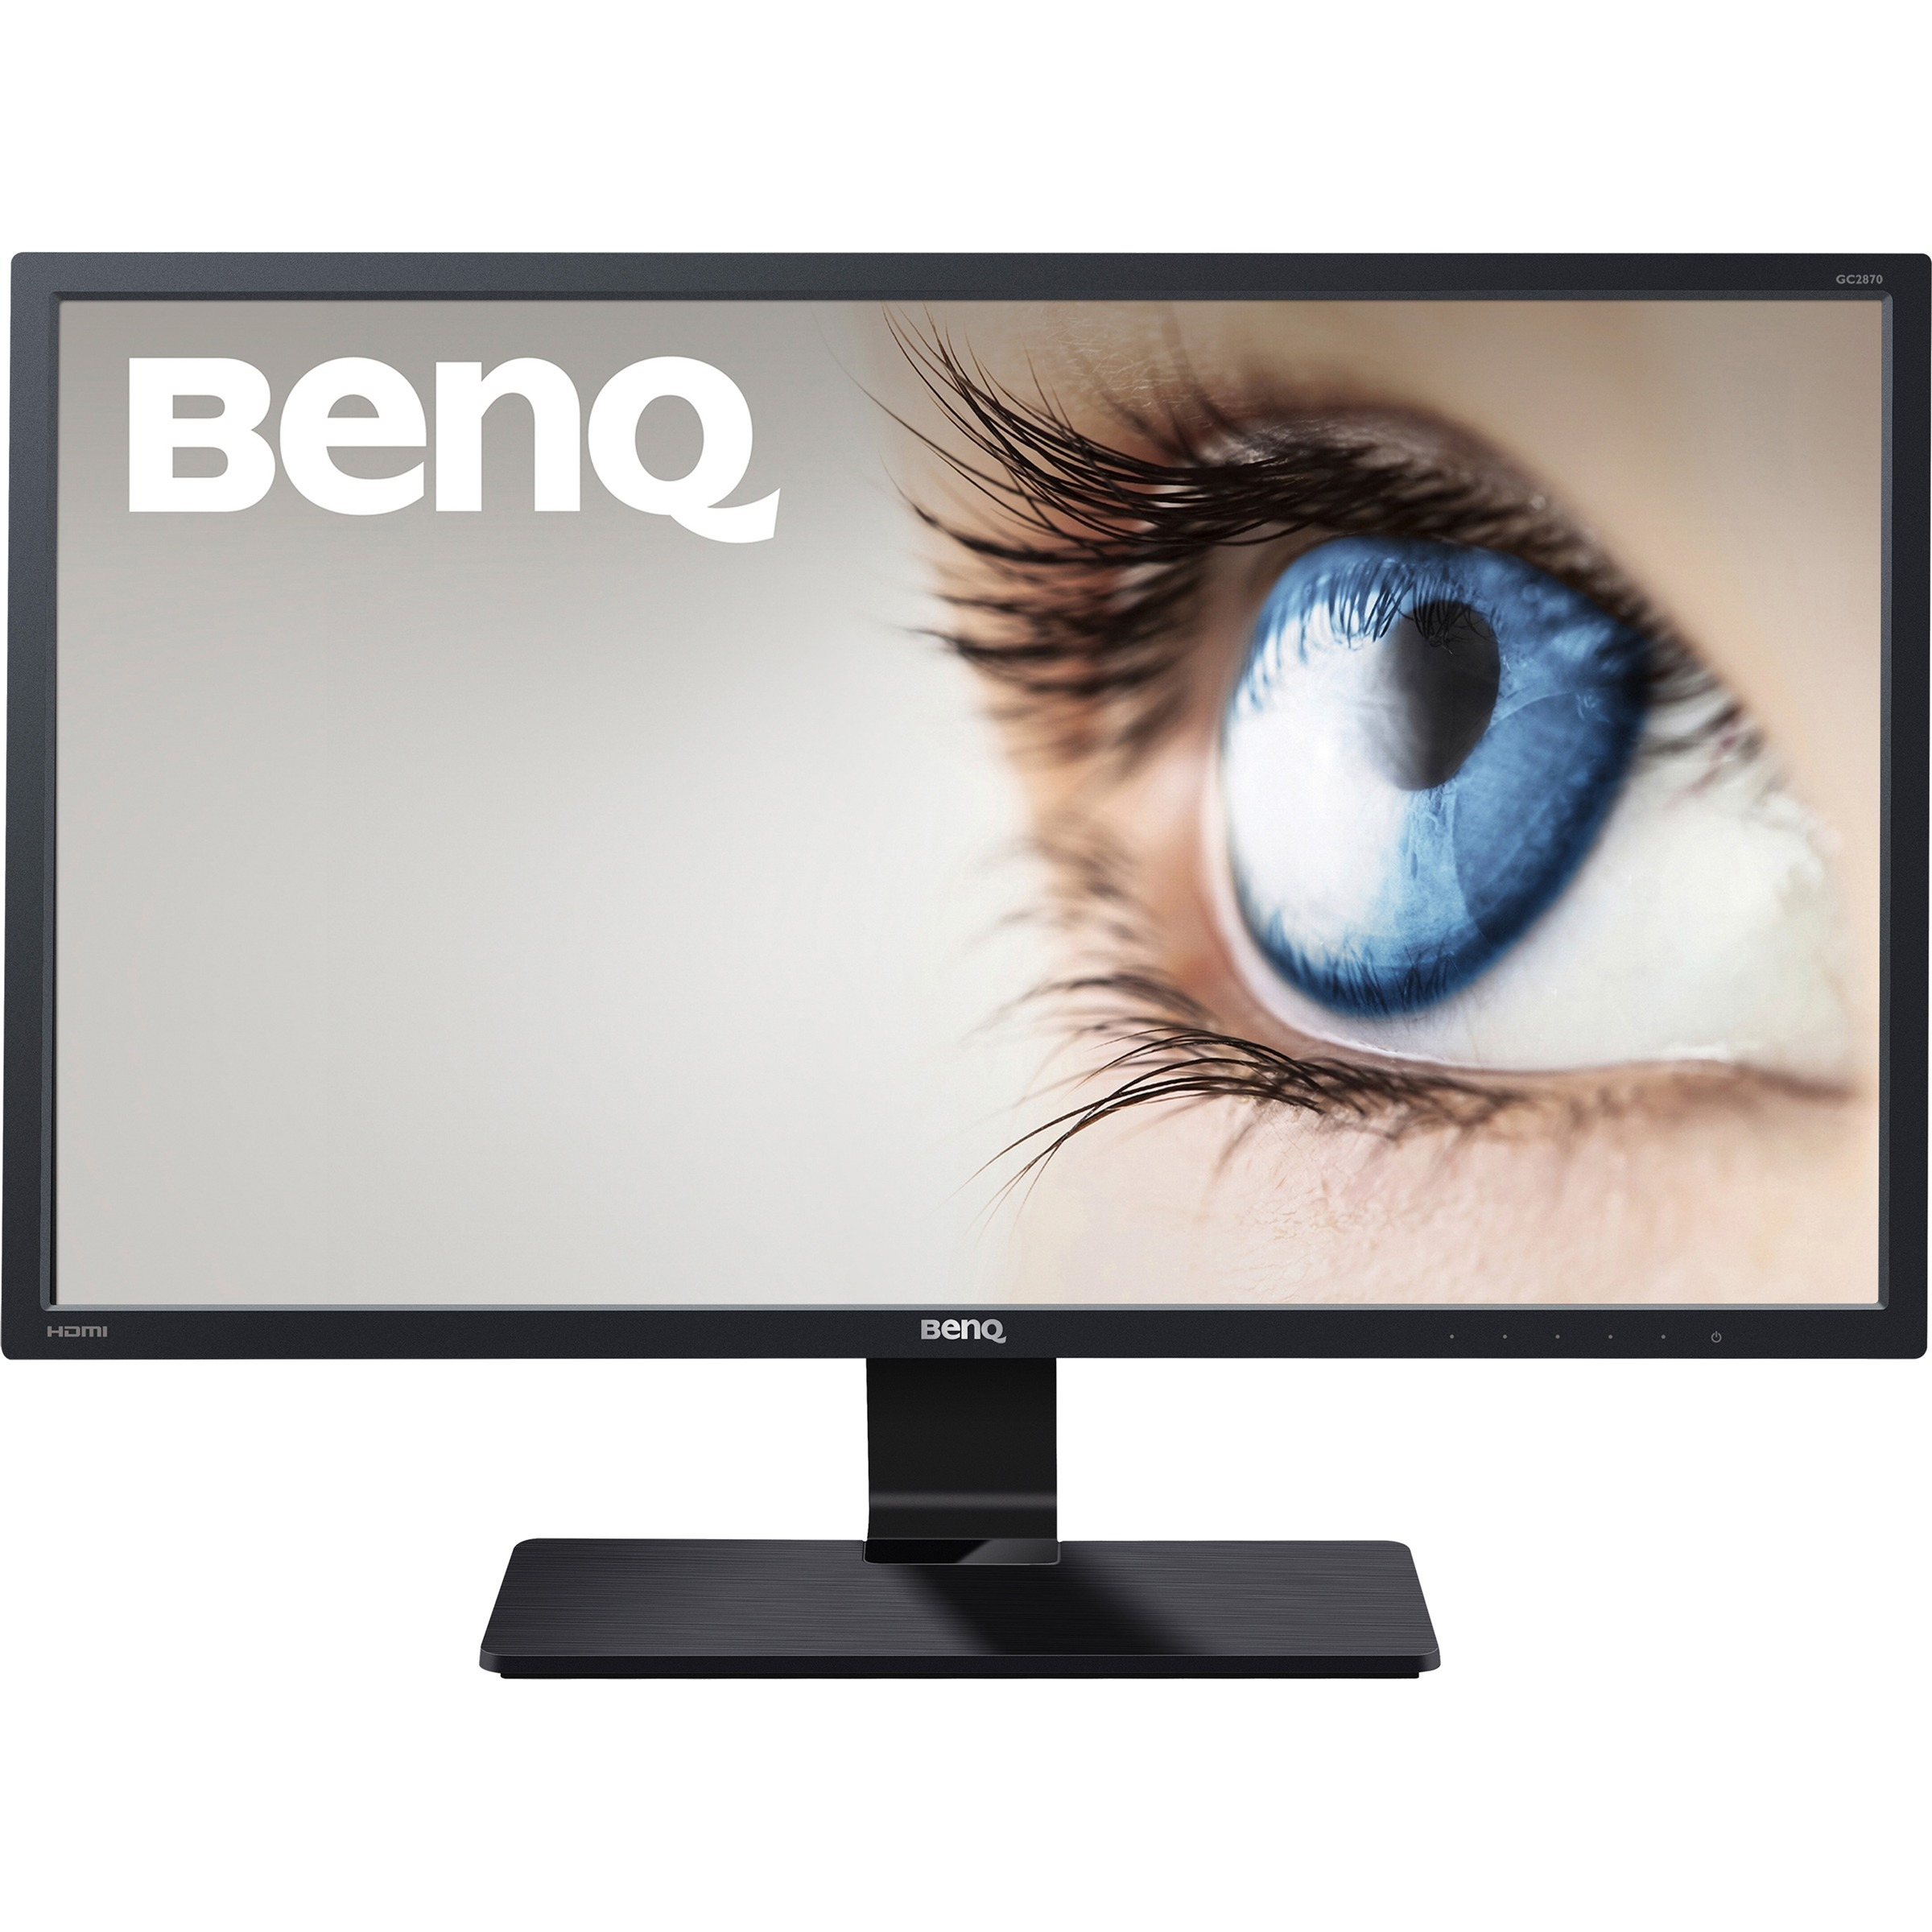 BenQ GC2870H  28inch LED Monitor - 16:9 - 5 ms